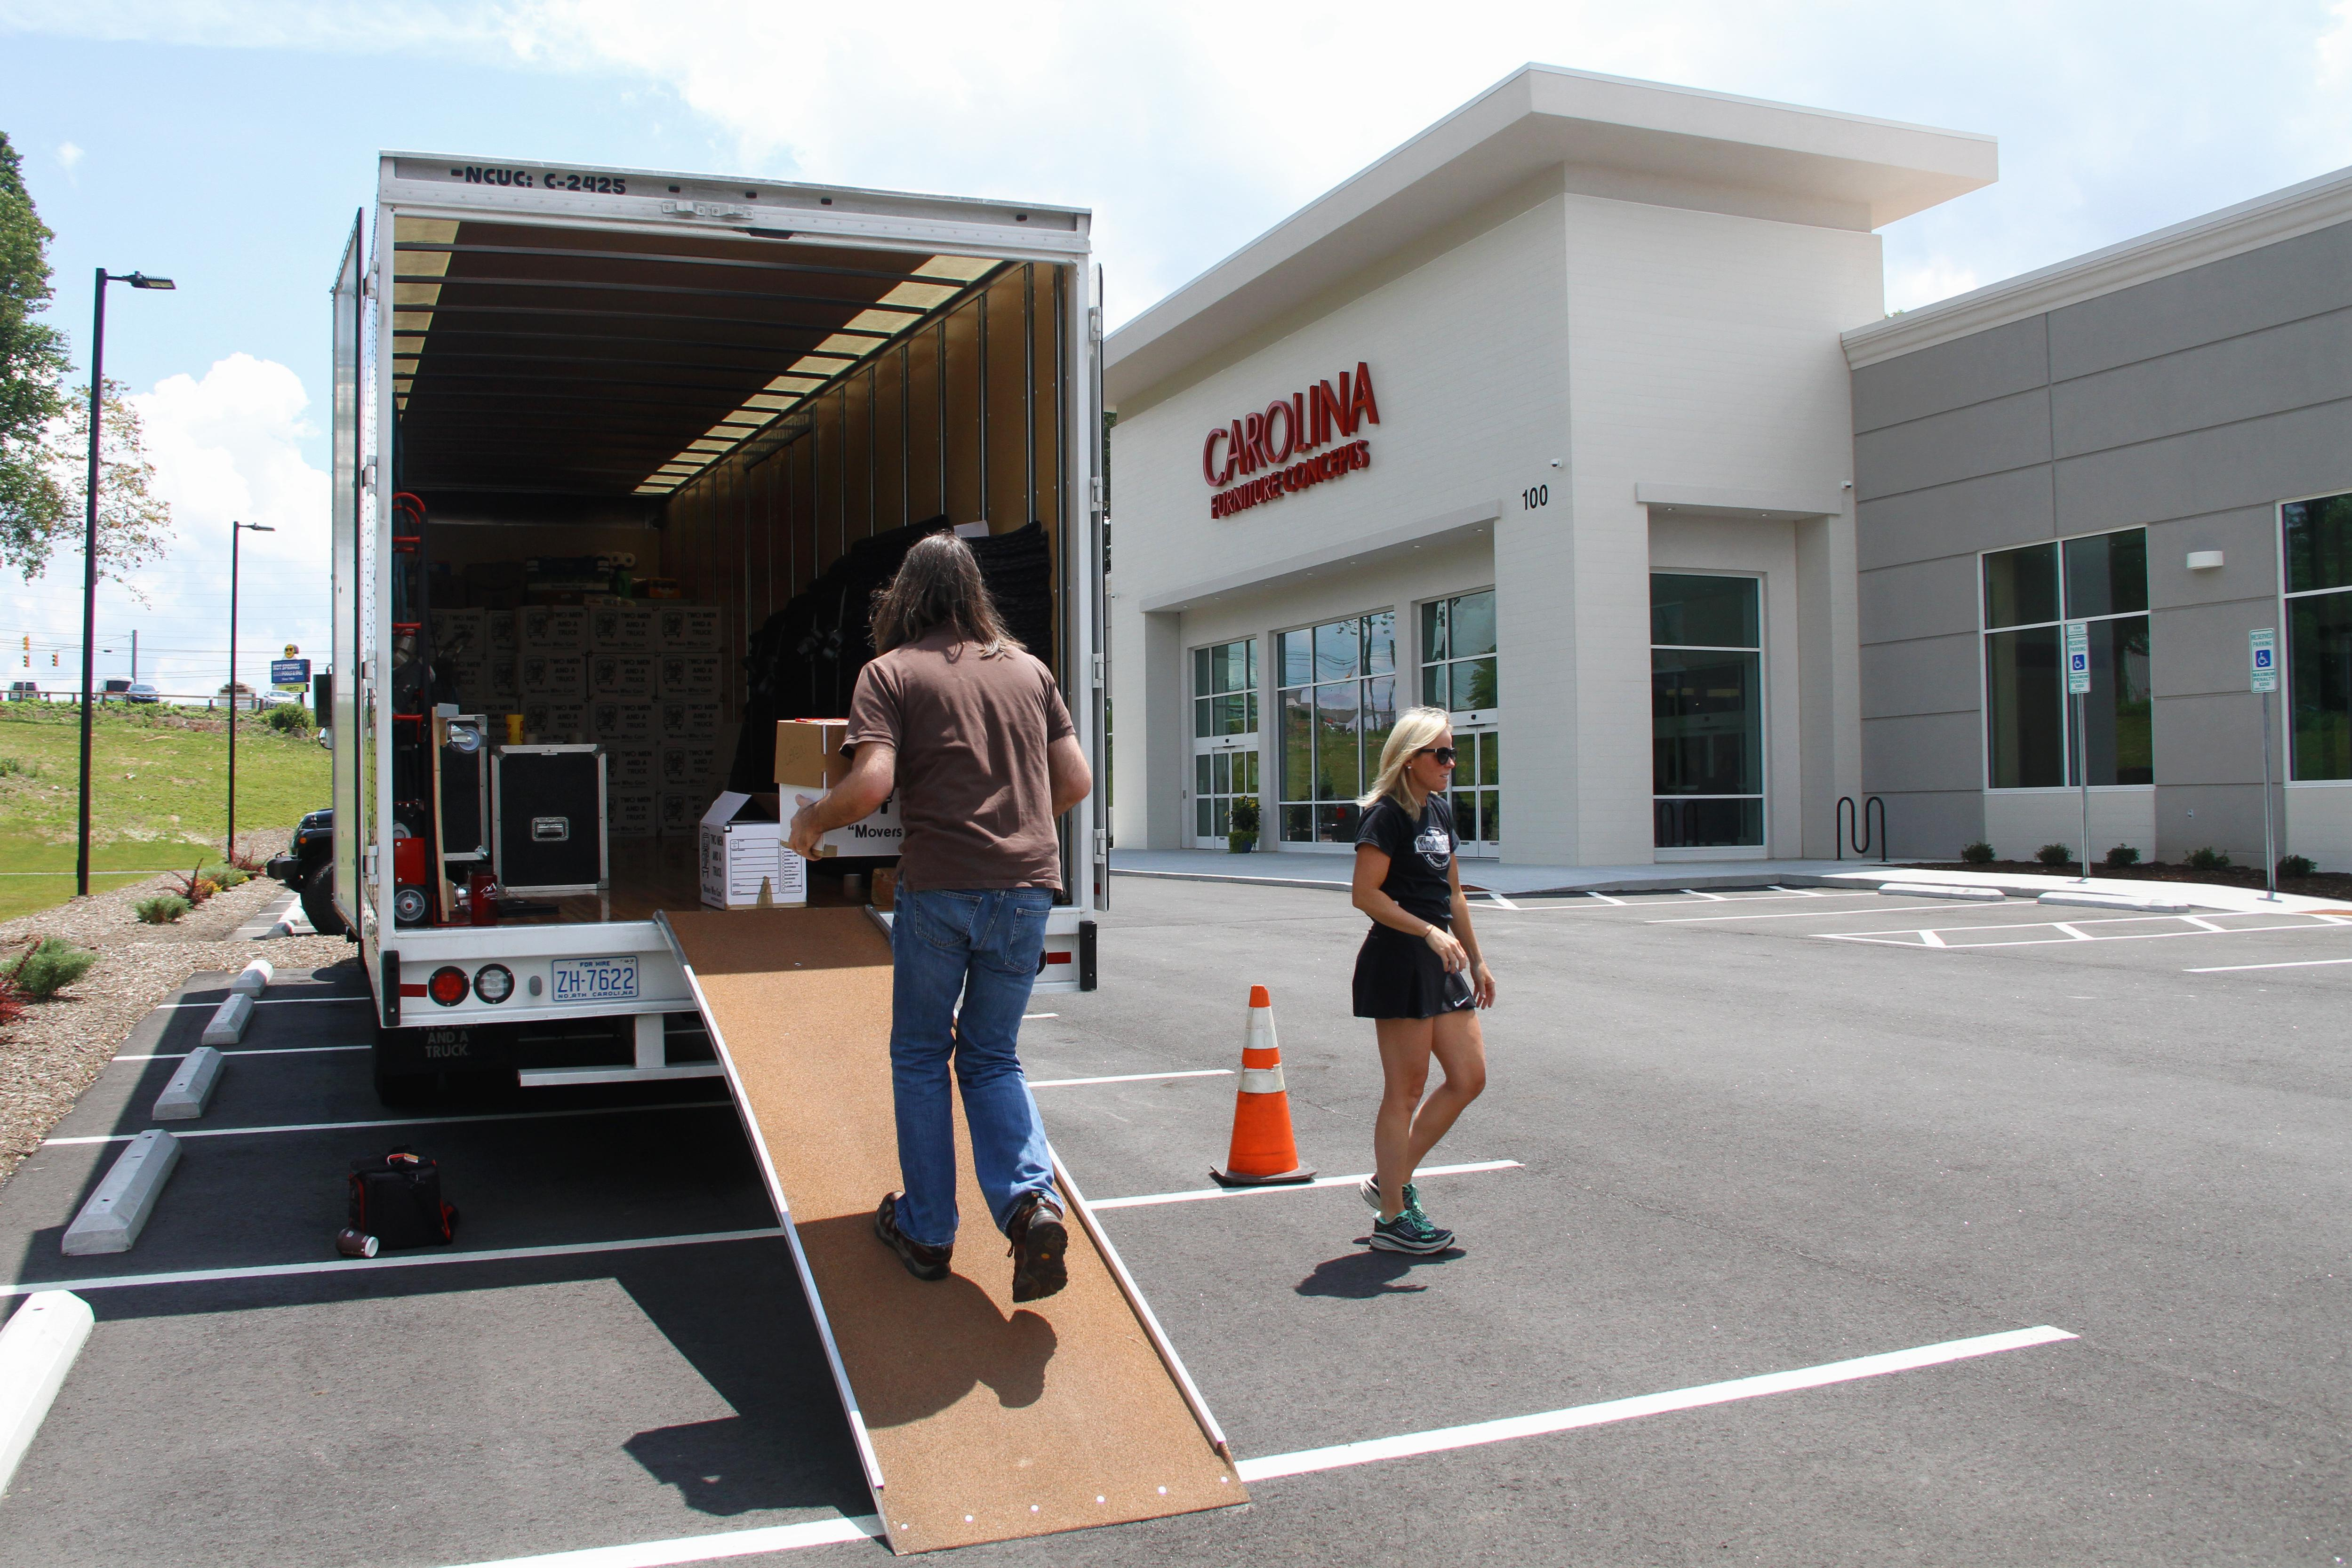 The scene at the Break the Hunger Food Drive on June 9, 2017. News 13 partnered with Carolina Furniture Concepts and Two Men & A Truck for Break the Hunger. This was the fifth year for the food drive, which helps prevent food insecurity for local children during the summer break. (Photo credit: WLOS Staff)